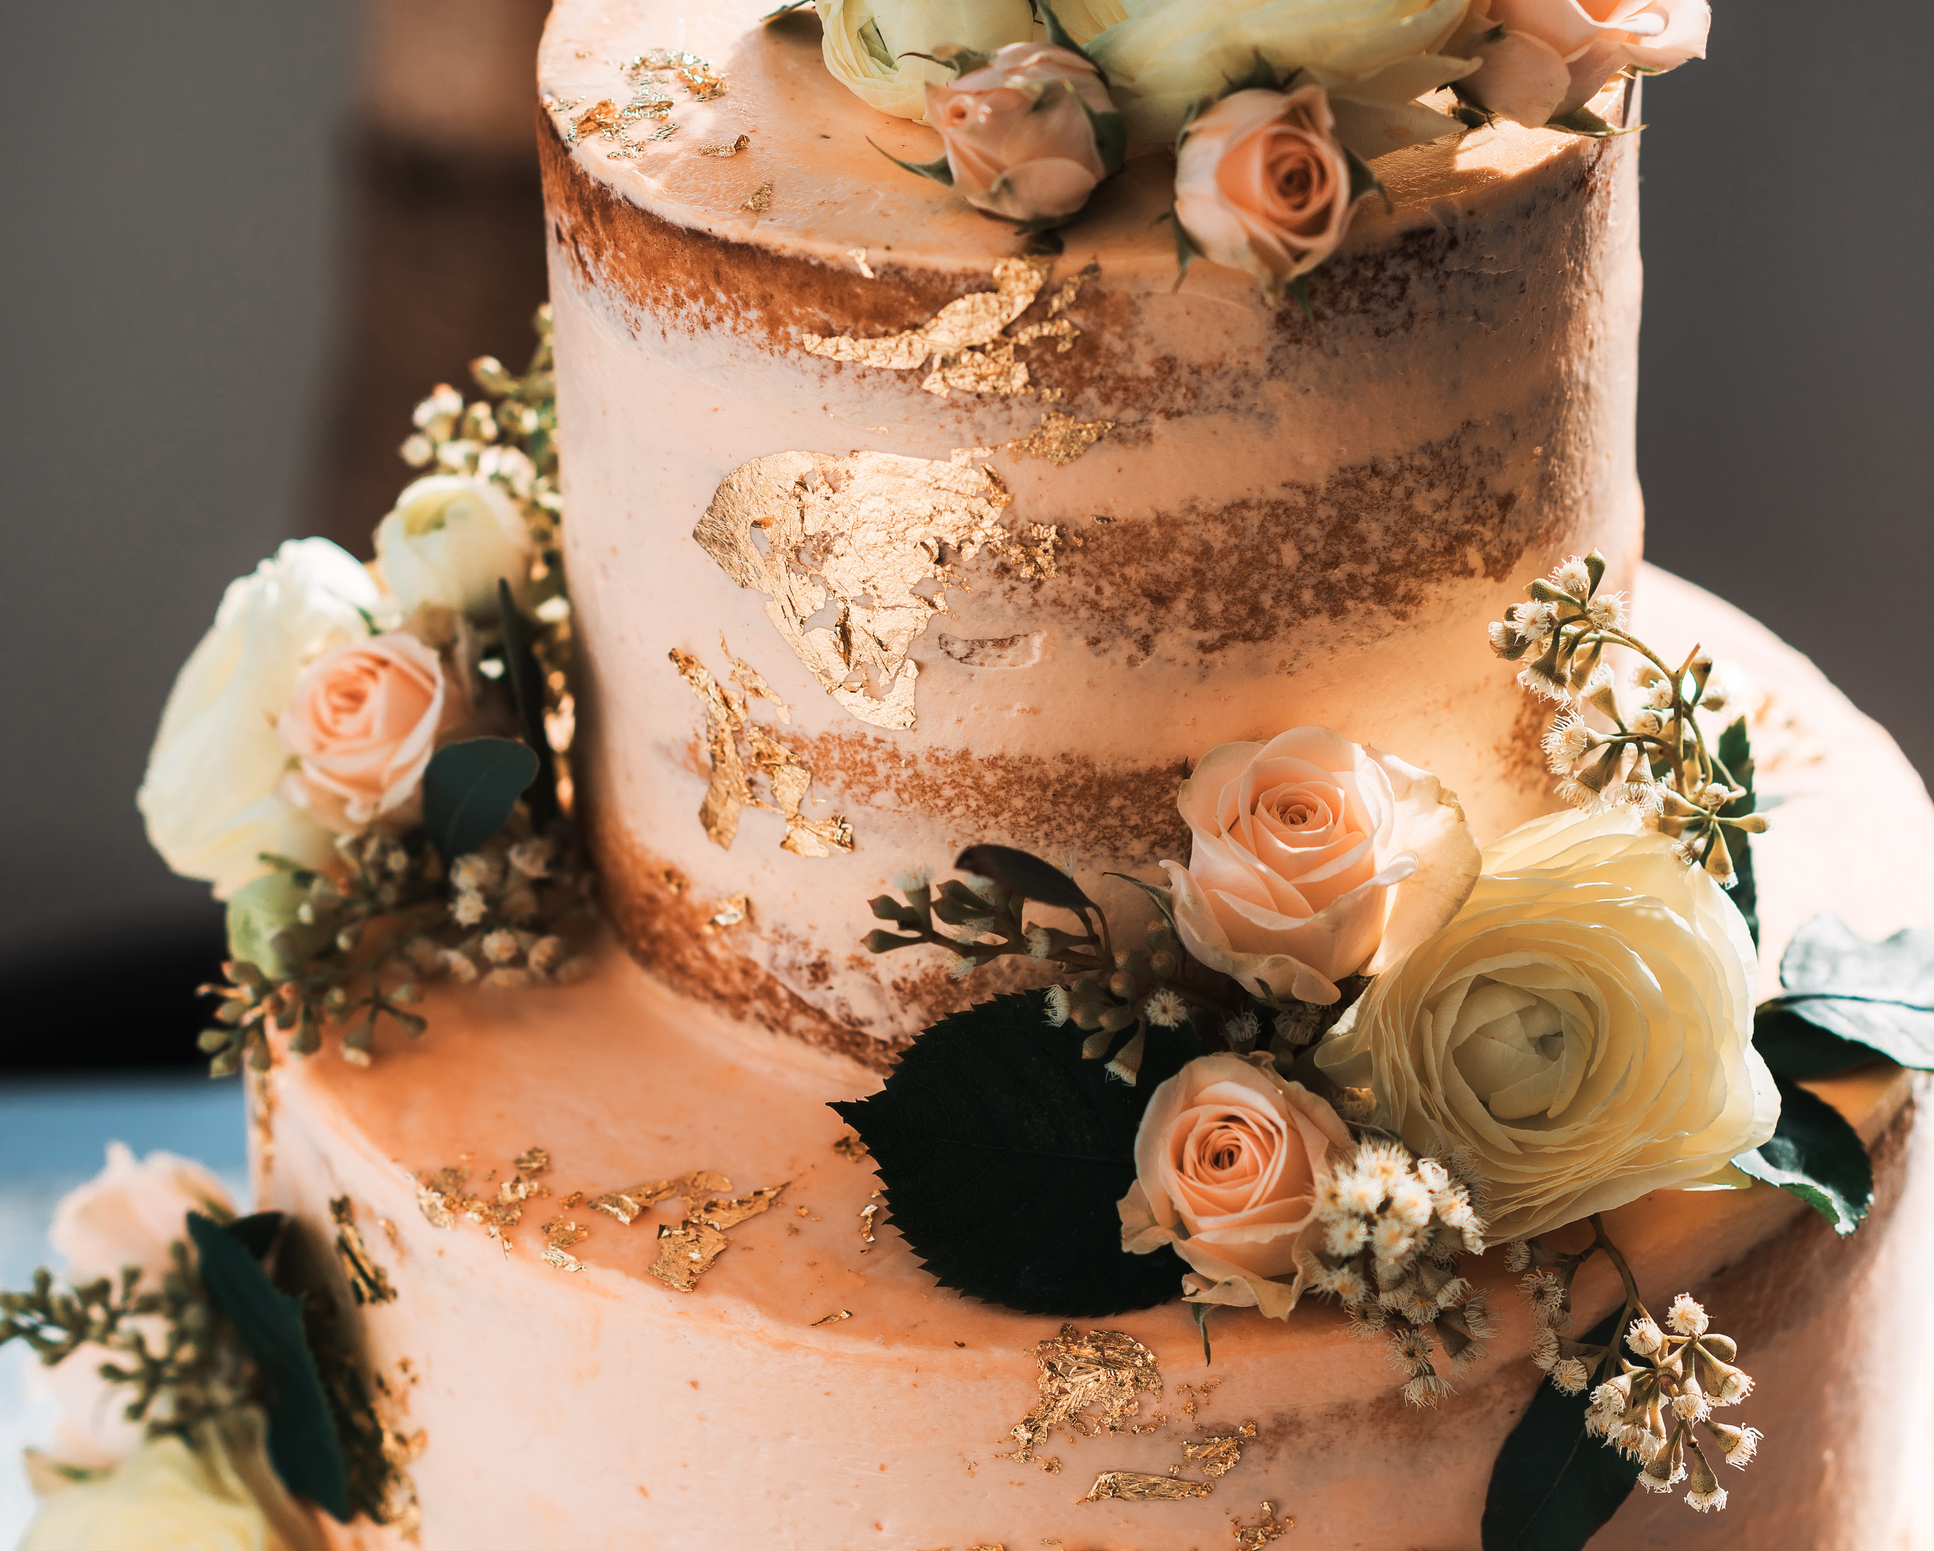 Wedding pink cake with edible flowers